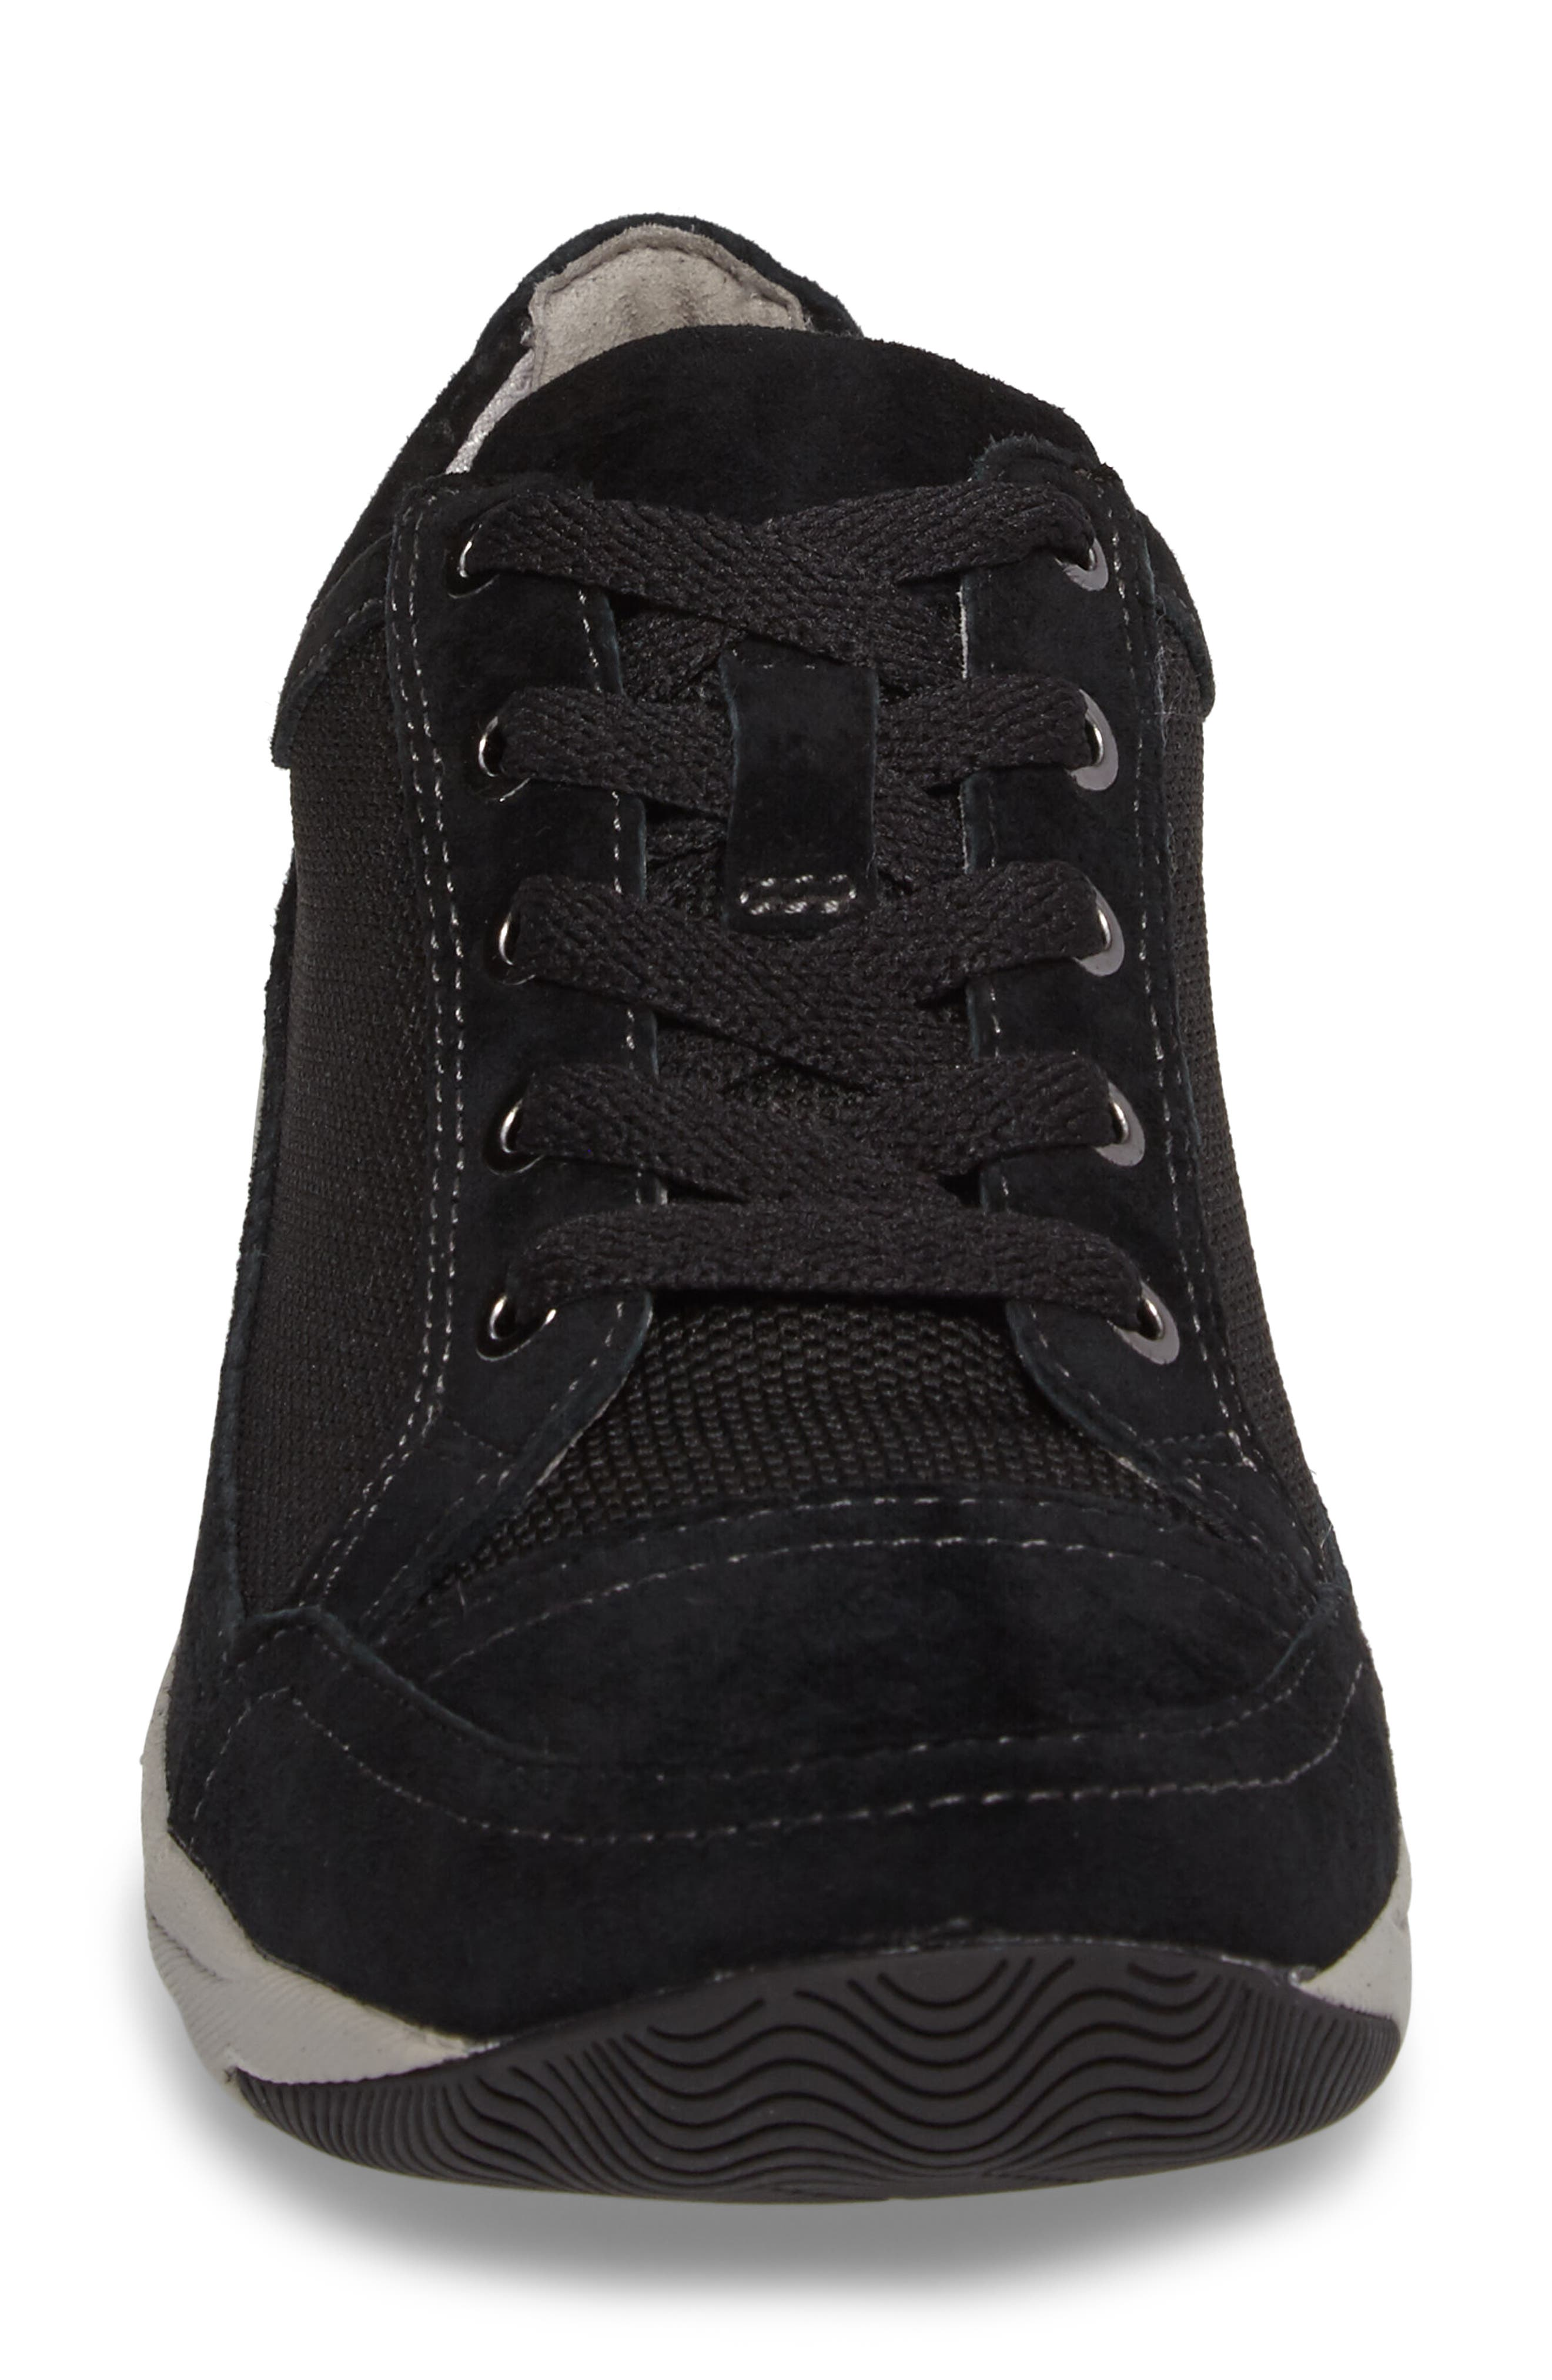 Harmony Sneaker,                             Alternate thumbnail 4, color,                             Black Suede